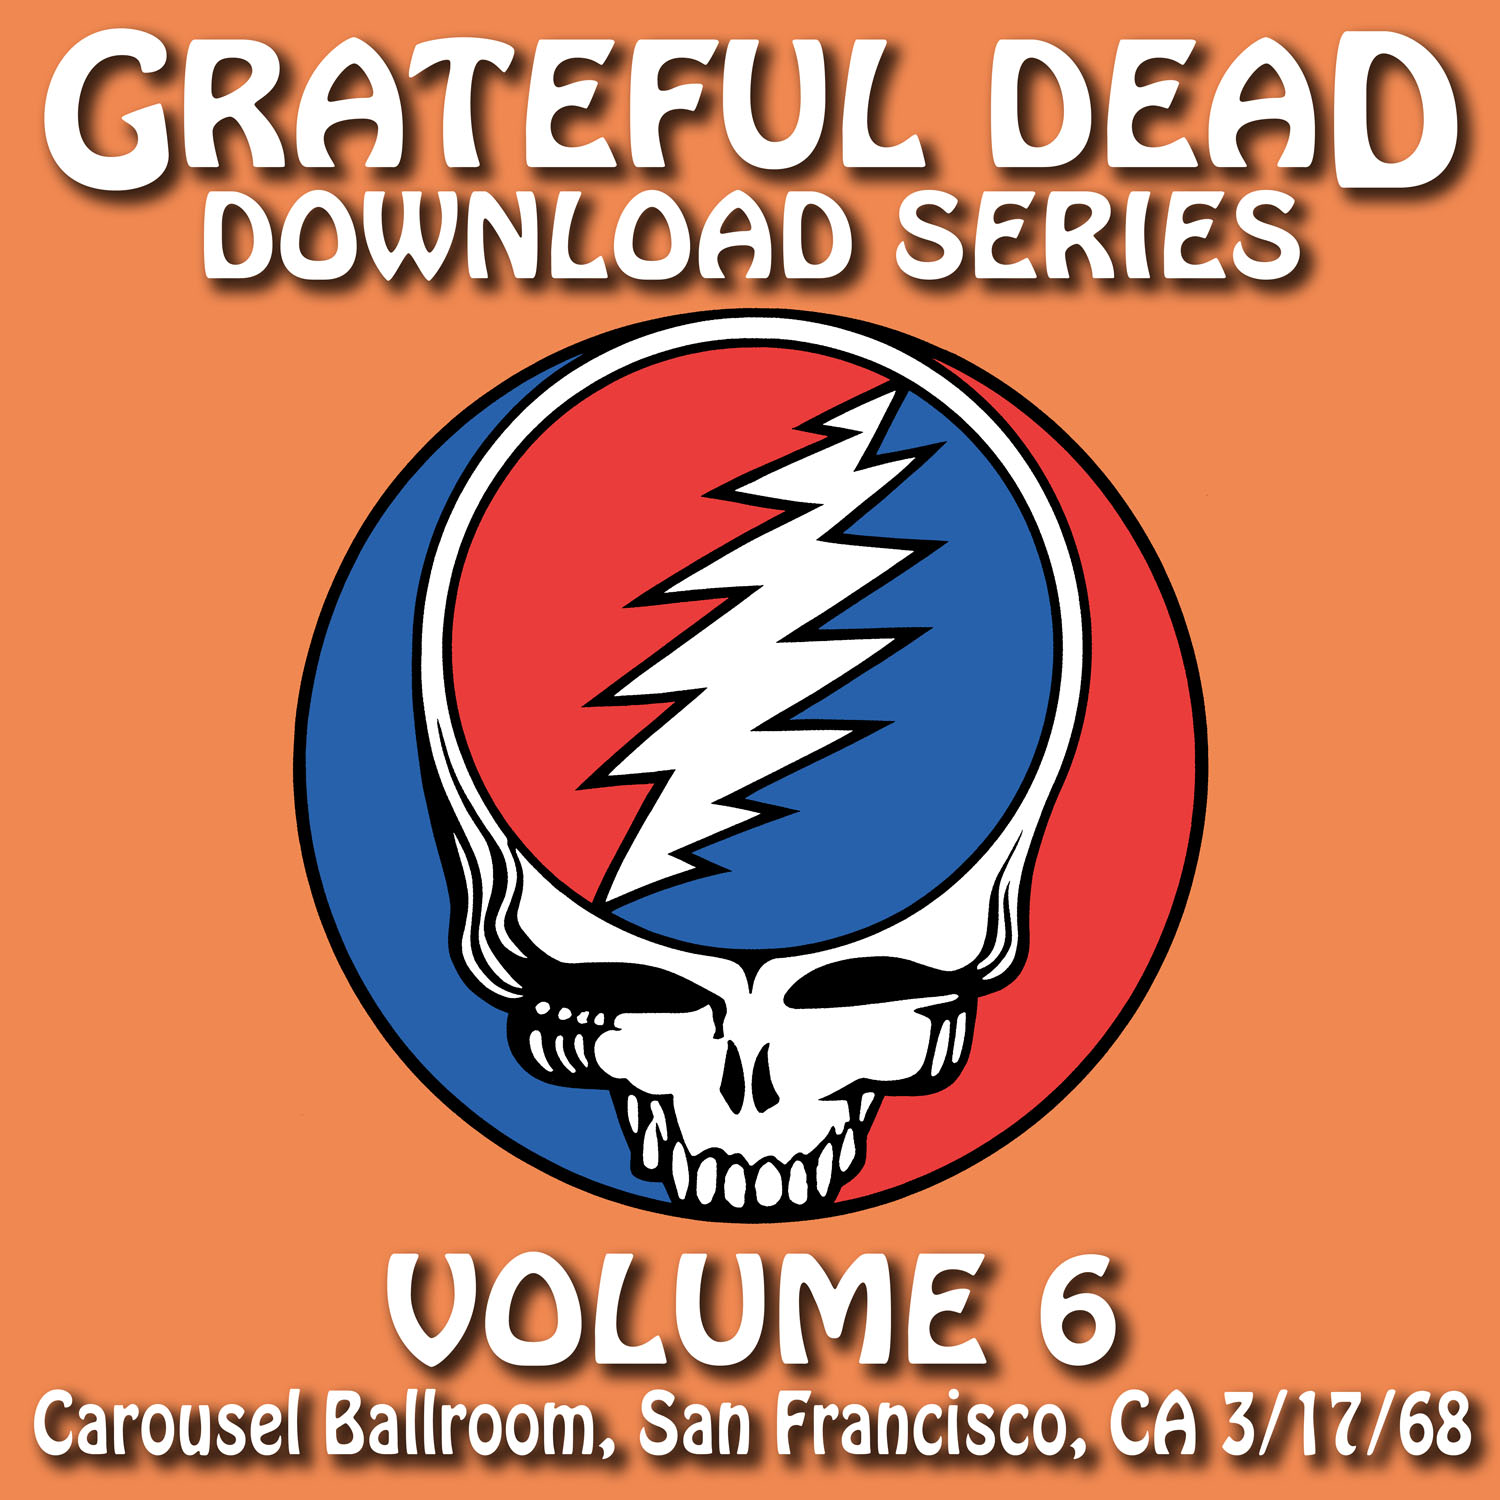 Grateful Dead Download Series 6 album cover artwork